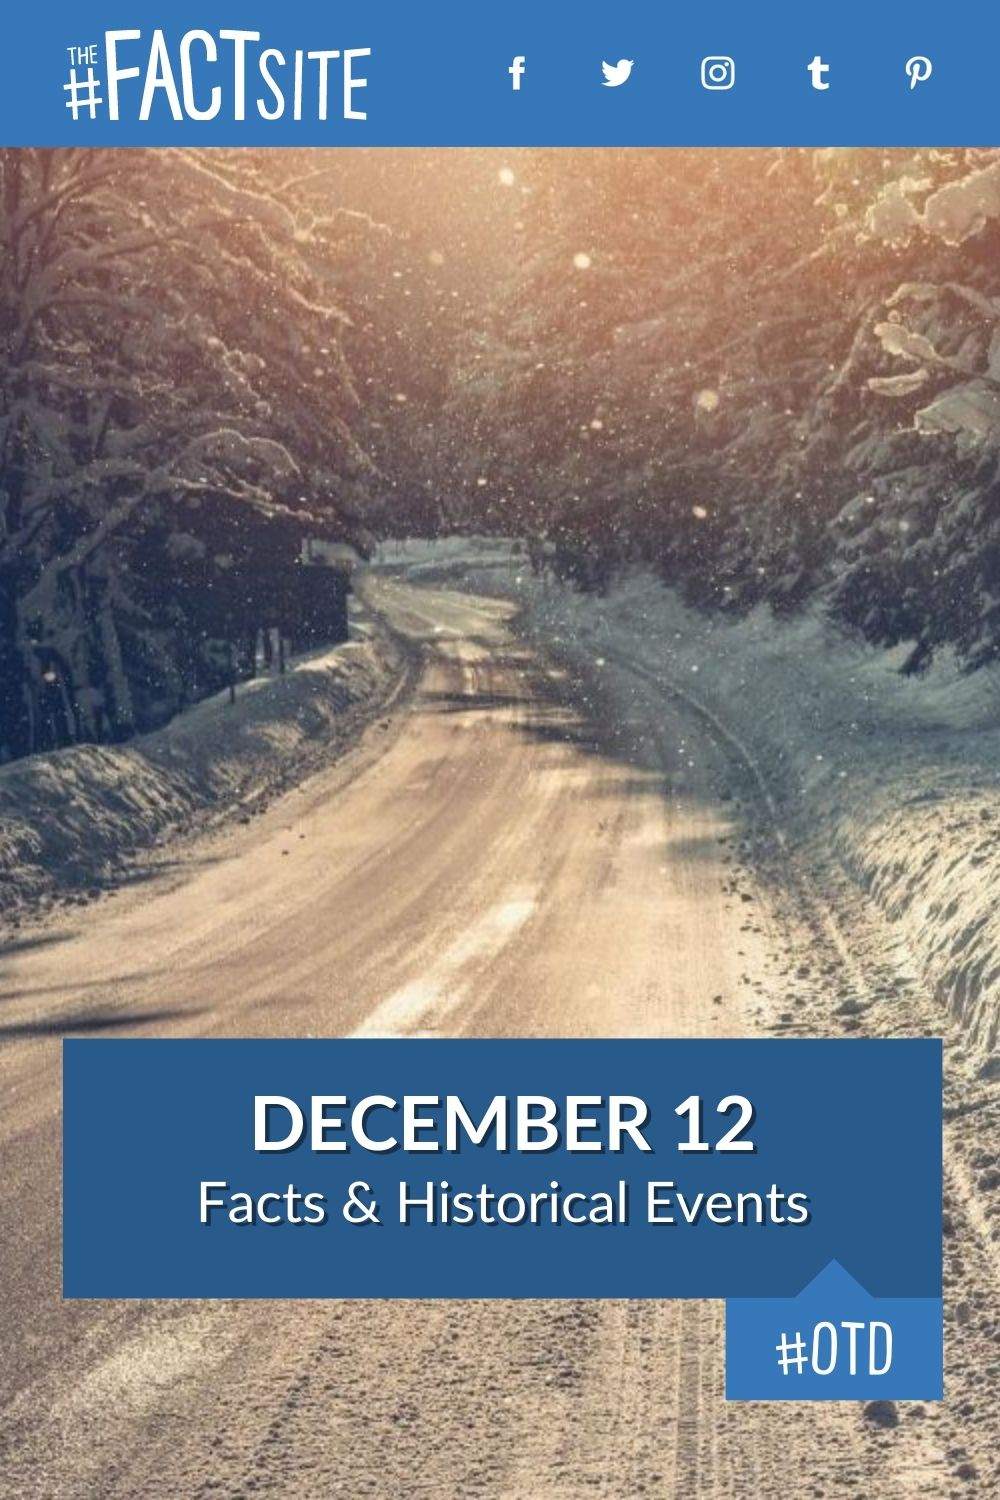 Facts & Historic Events That Happened on December 12